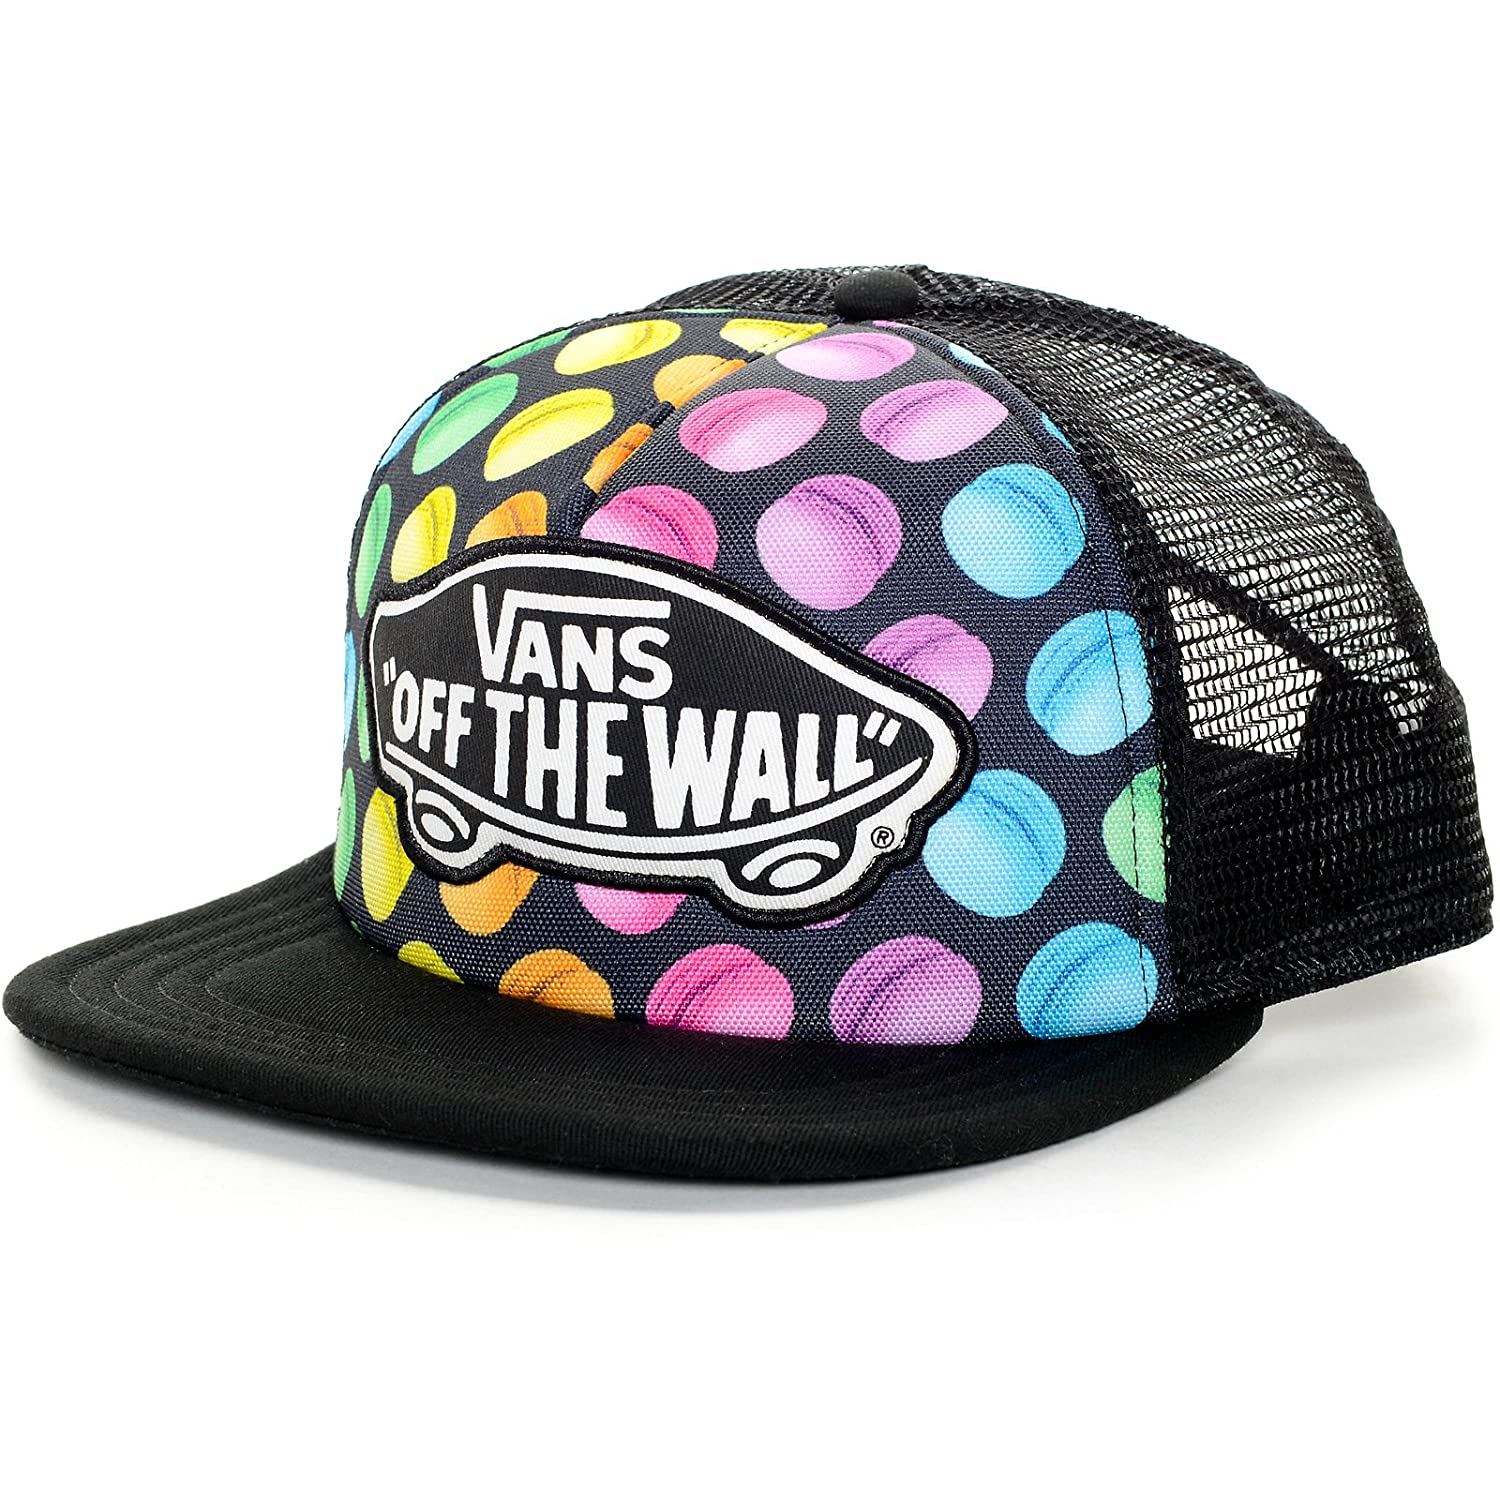 Vans Off The Wall Women s Beach Girl Trucker Hat Cap - Macaroons at Amazon  Women s Clothing store  238762c7393f